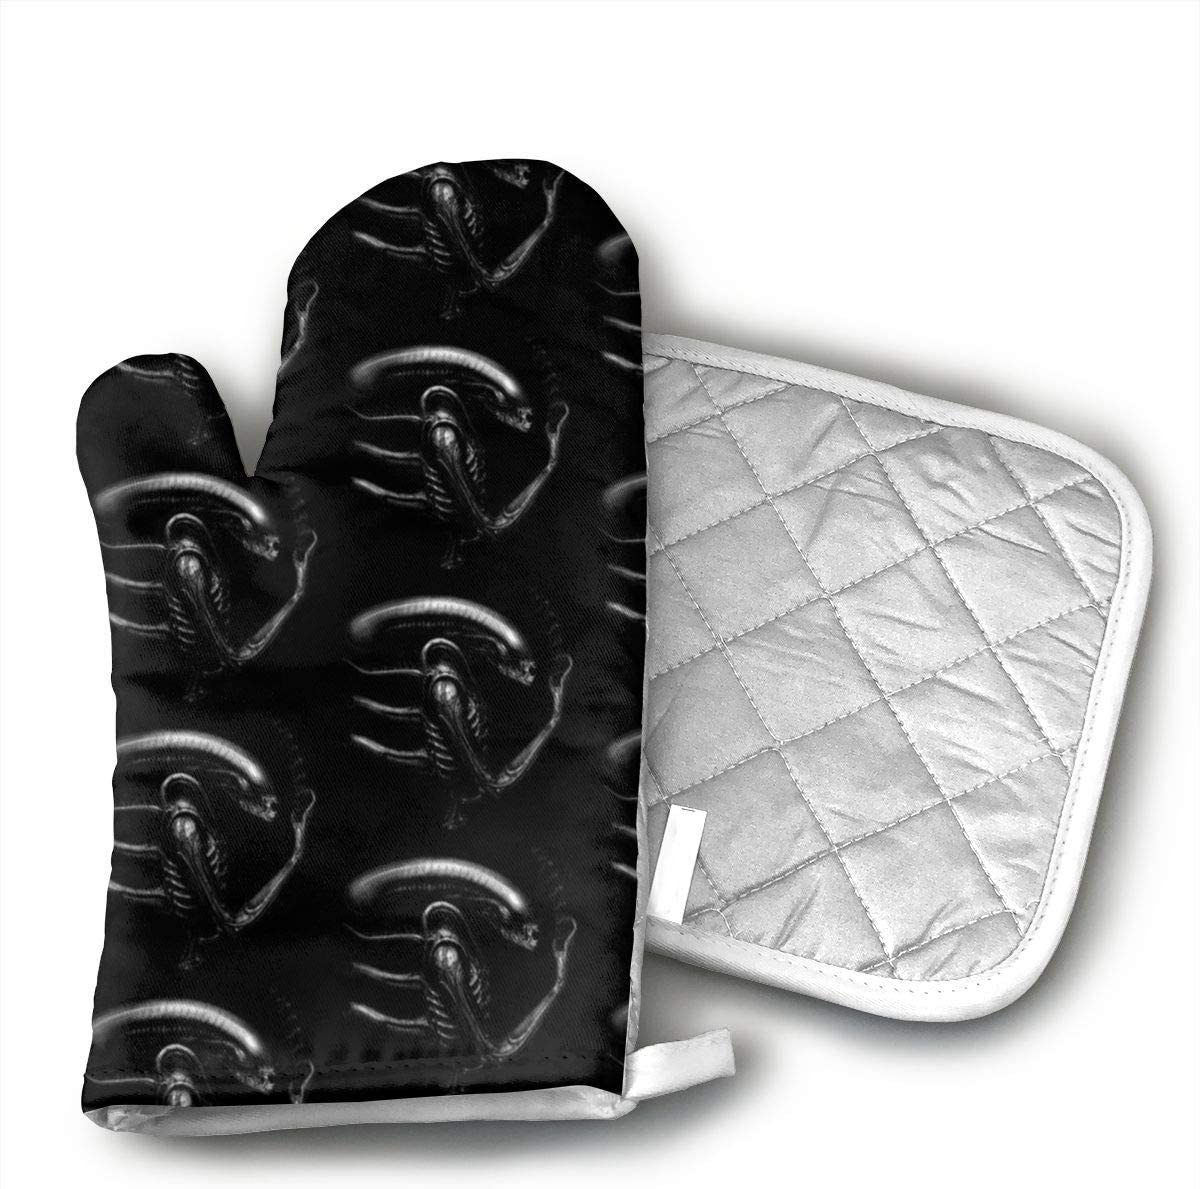 Ydsgjds Giger Alien Oven Mitts and BBQ Gloves Pot Holders, Heat Resistant Mitts for Finger Hand Wrist Protection with Inner Lining, Kitchen Gloves for Grilling Machine Baking Grilling with Non-Slip